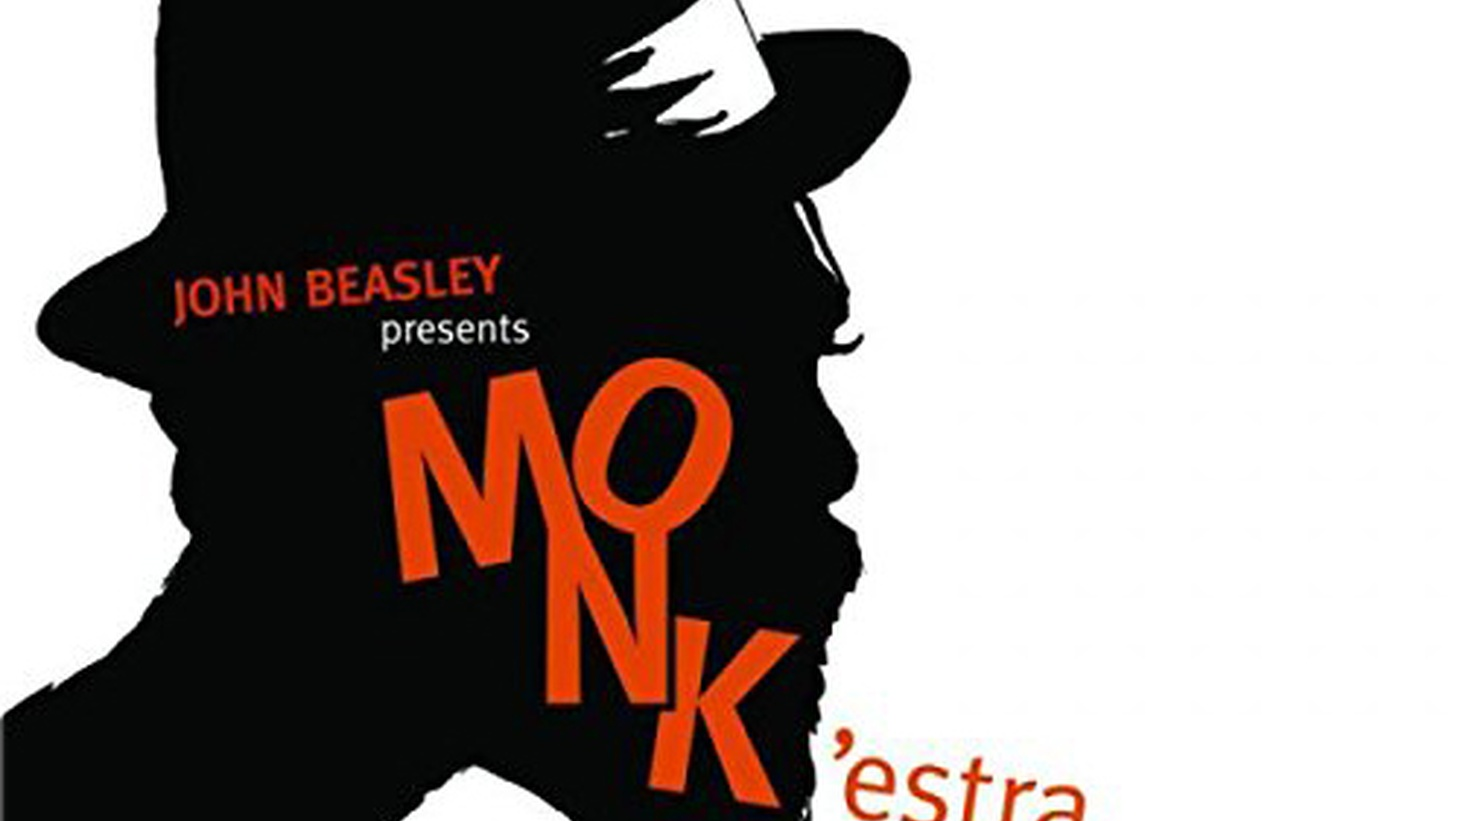 This week composer, pianist, and arranger John Beasley stops by Rhythm Planet to share his unique take on Thelonious Monk's music.